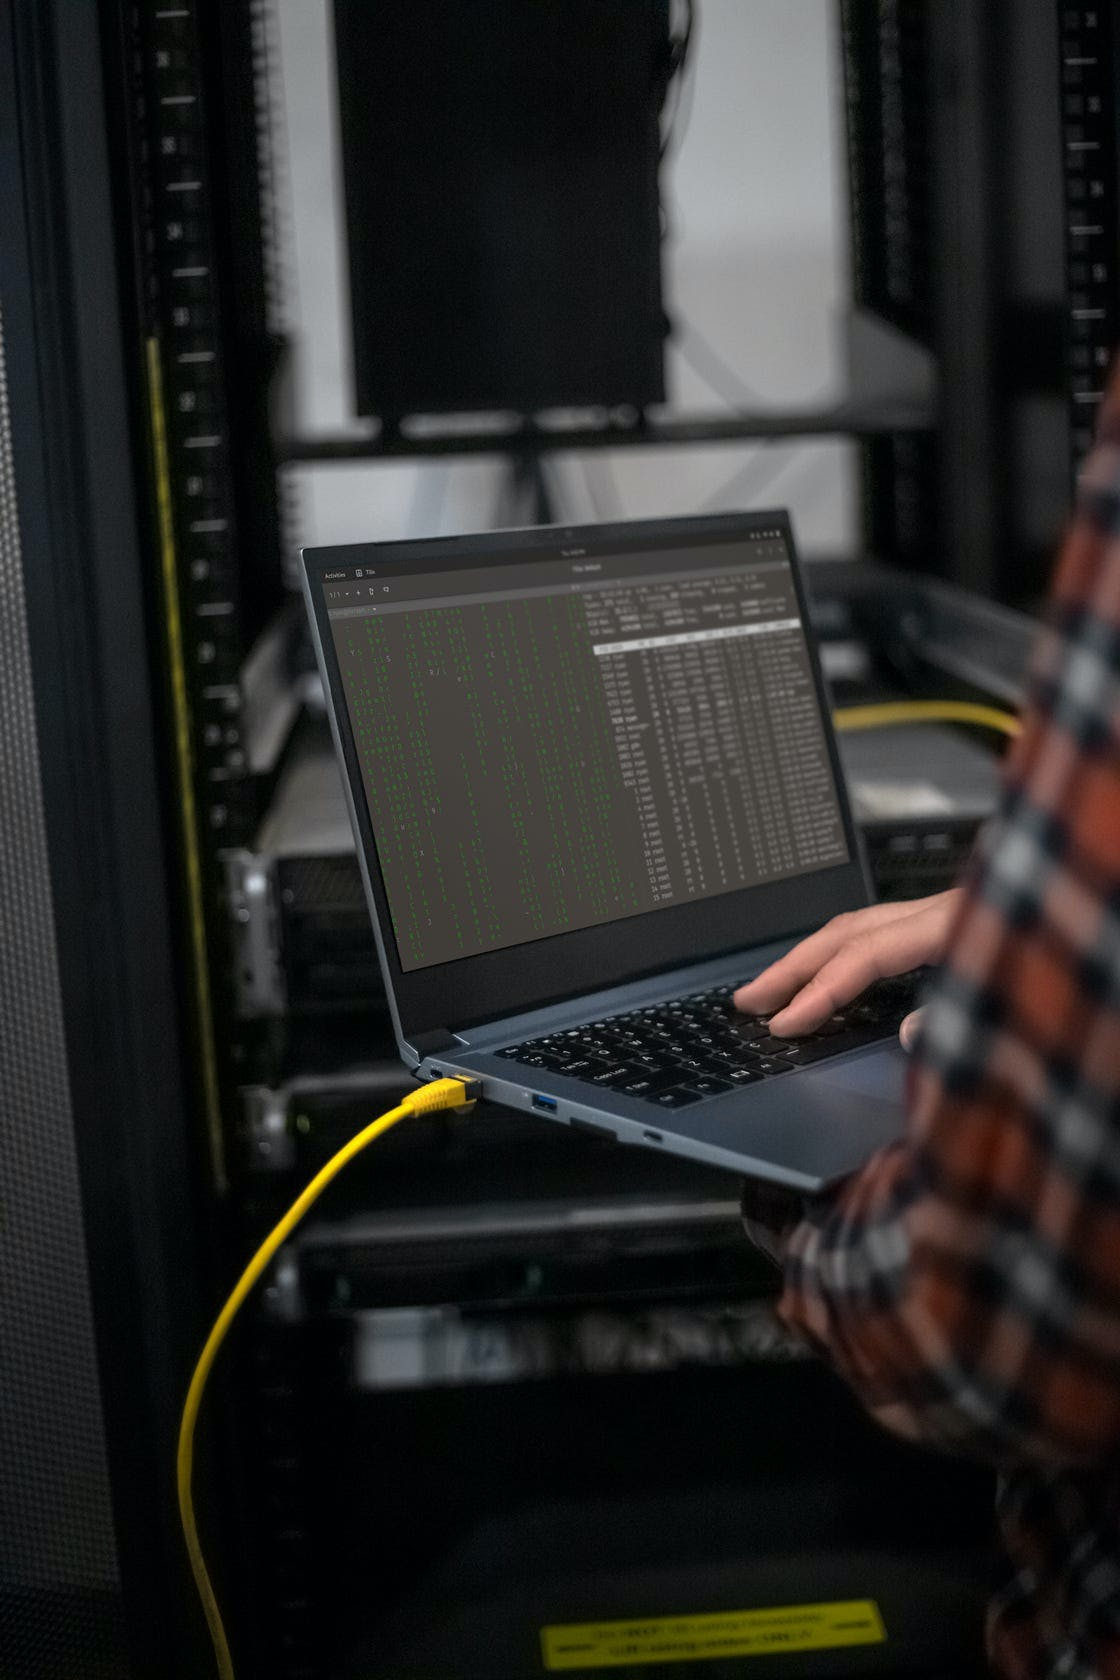 A person using the Galago Pro to connect to a server via Ethernet.